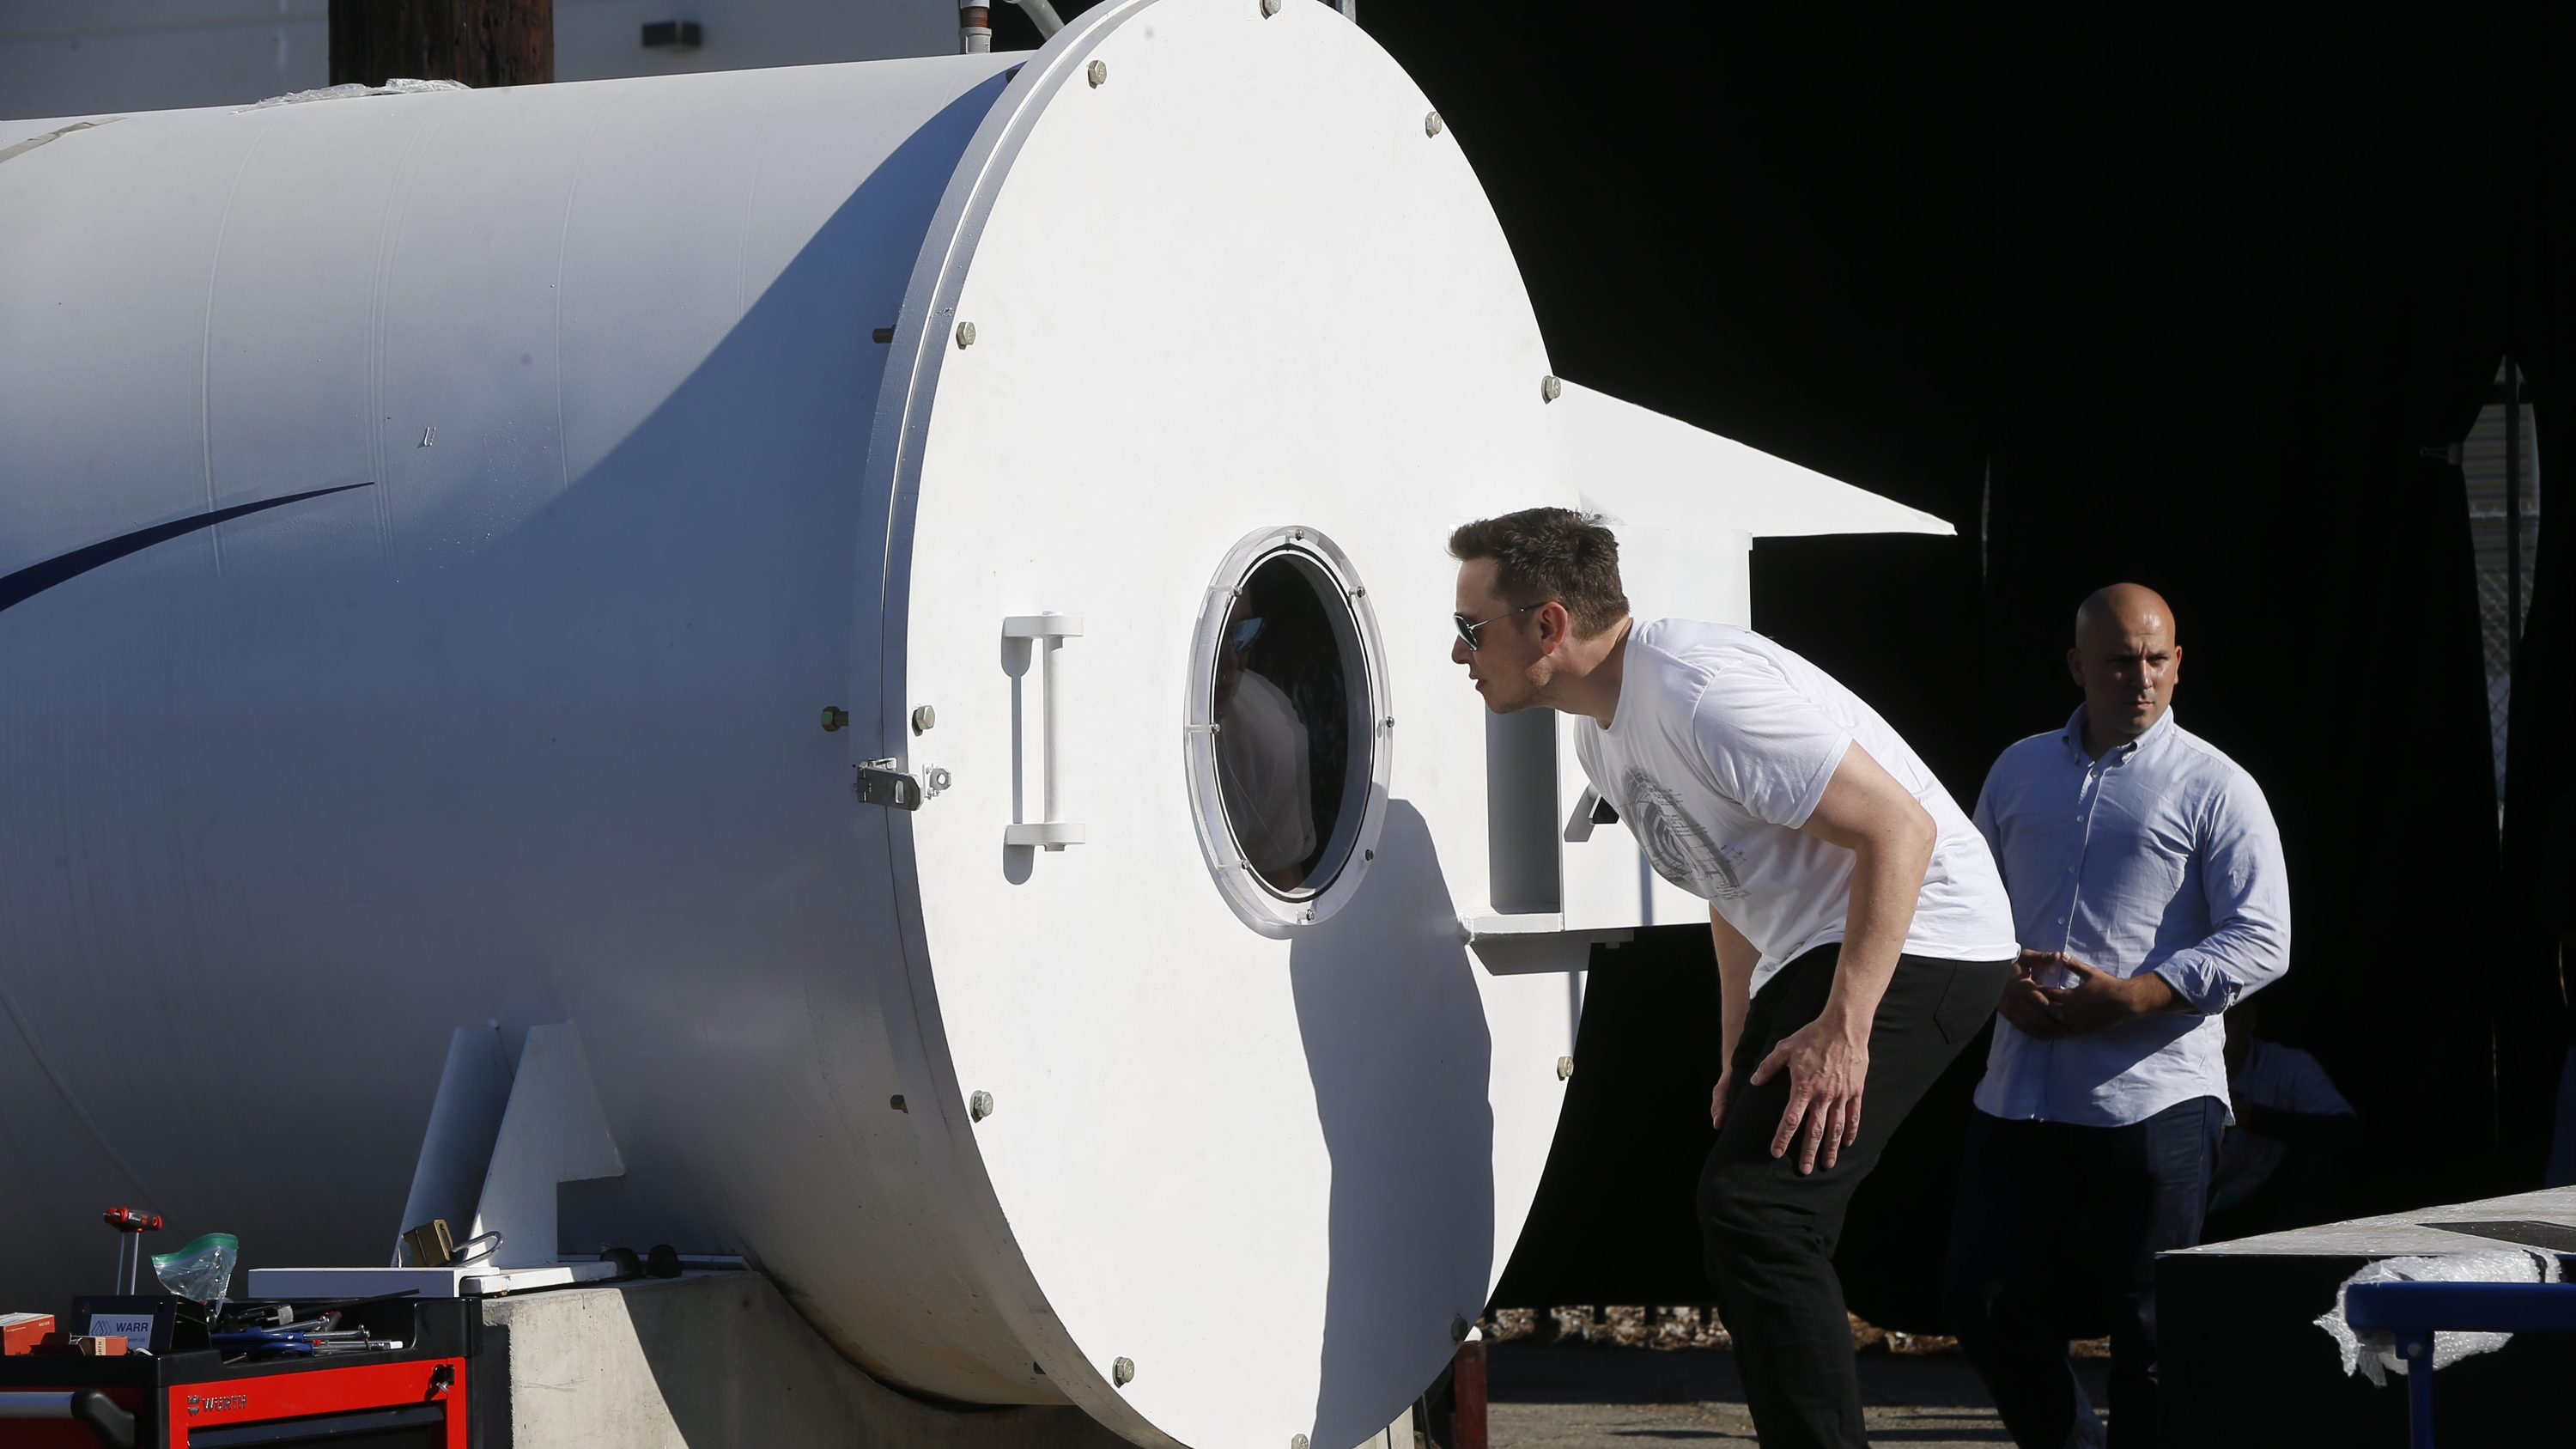 Telsa CEO Elon Musk peaks inside the Hyperloop track door at the Hyperloop Pod Competition II at SpaceX's Hyperloop track in Hawthorne, Calif., Sunday, Aug. 27, 2017. The Hyperloop system built by SpaceX is approximately one mile in length with a six-foot outer diameter. The WARR team from Tech University Munich won the Hyperloop Pod Competition II with a peak speed of 324 kilometers per hour (201 mph).